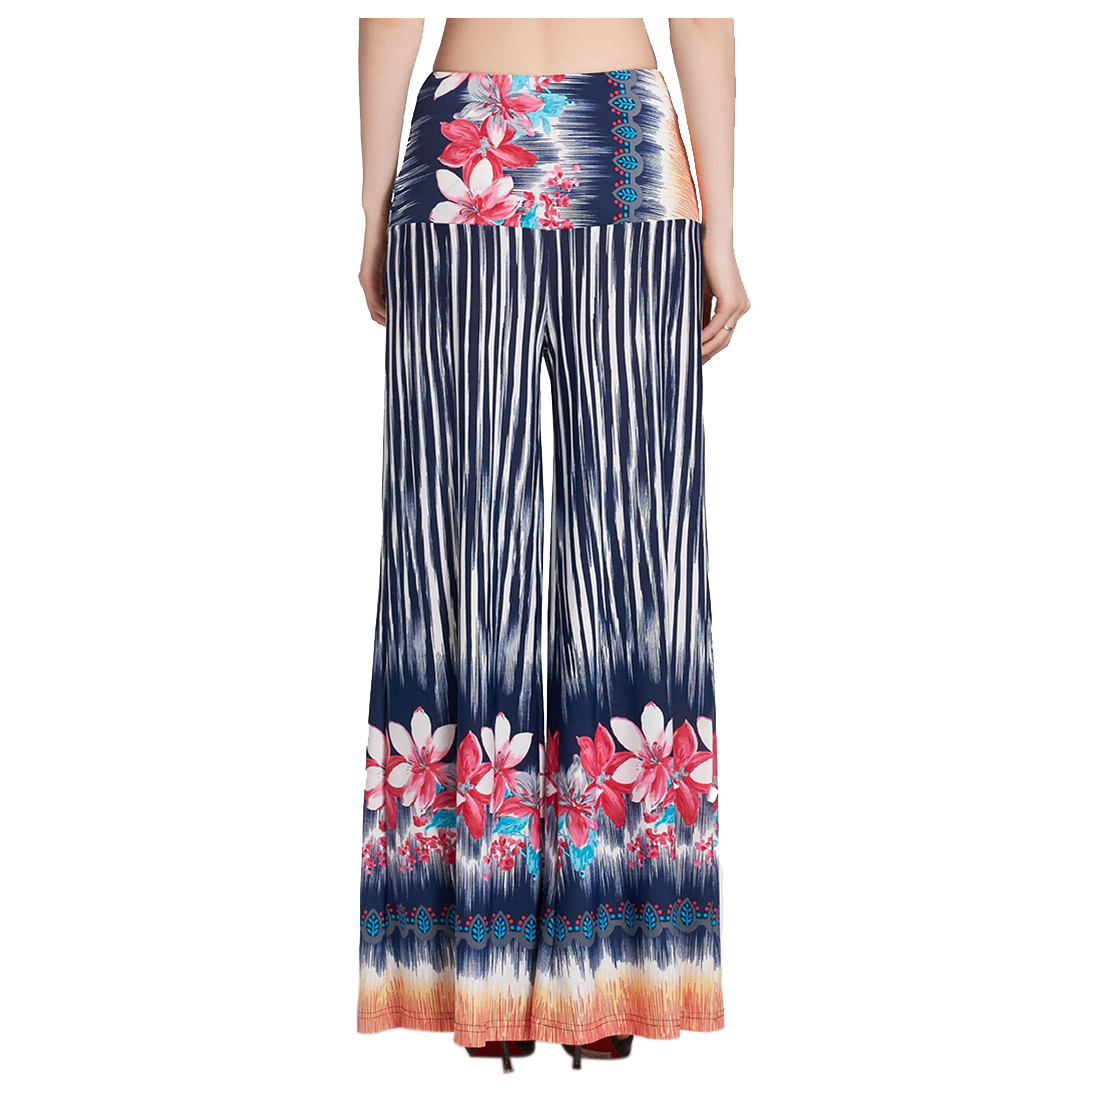 MYPF-Women High Waist Loose Pants Palazzo Wide Leg Dance Pants Floral Printing Tribal Pattern Pants Bell Bottom Trouser